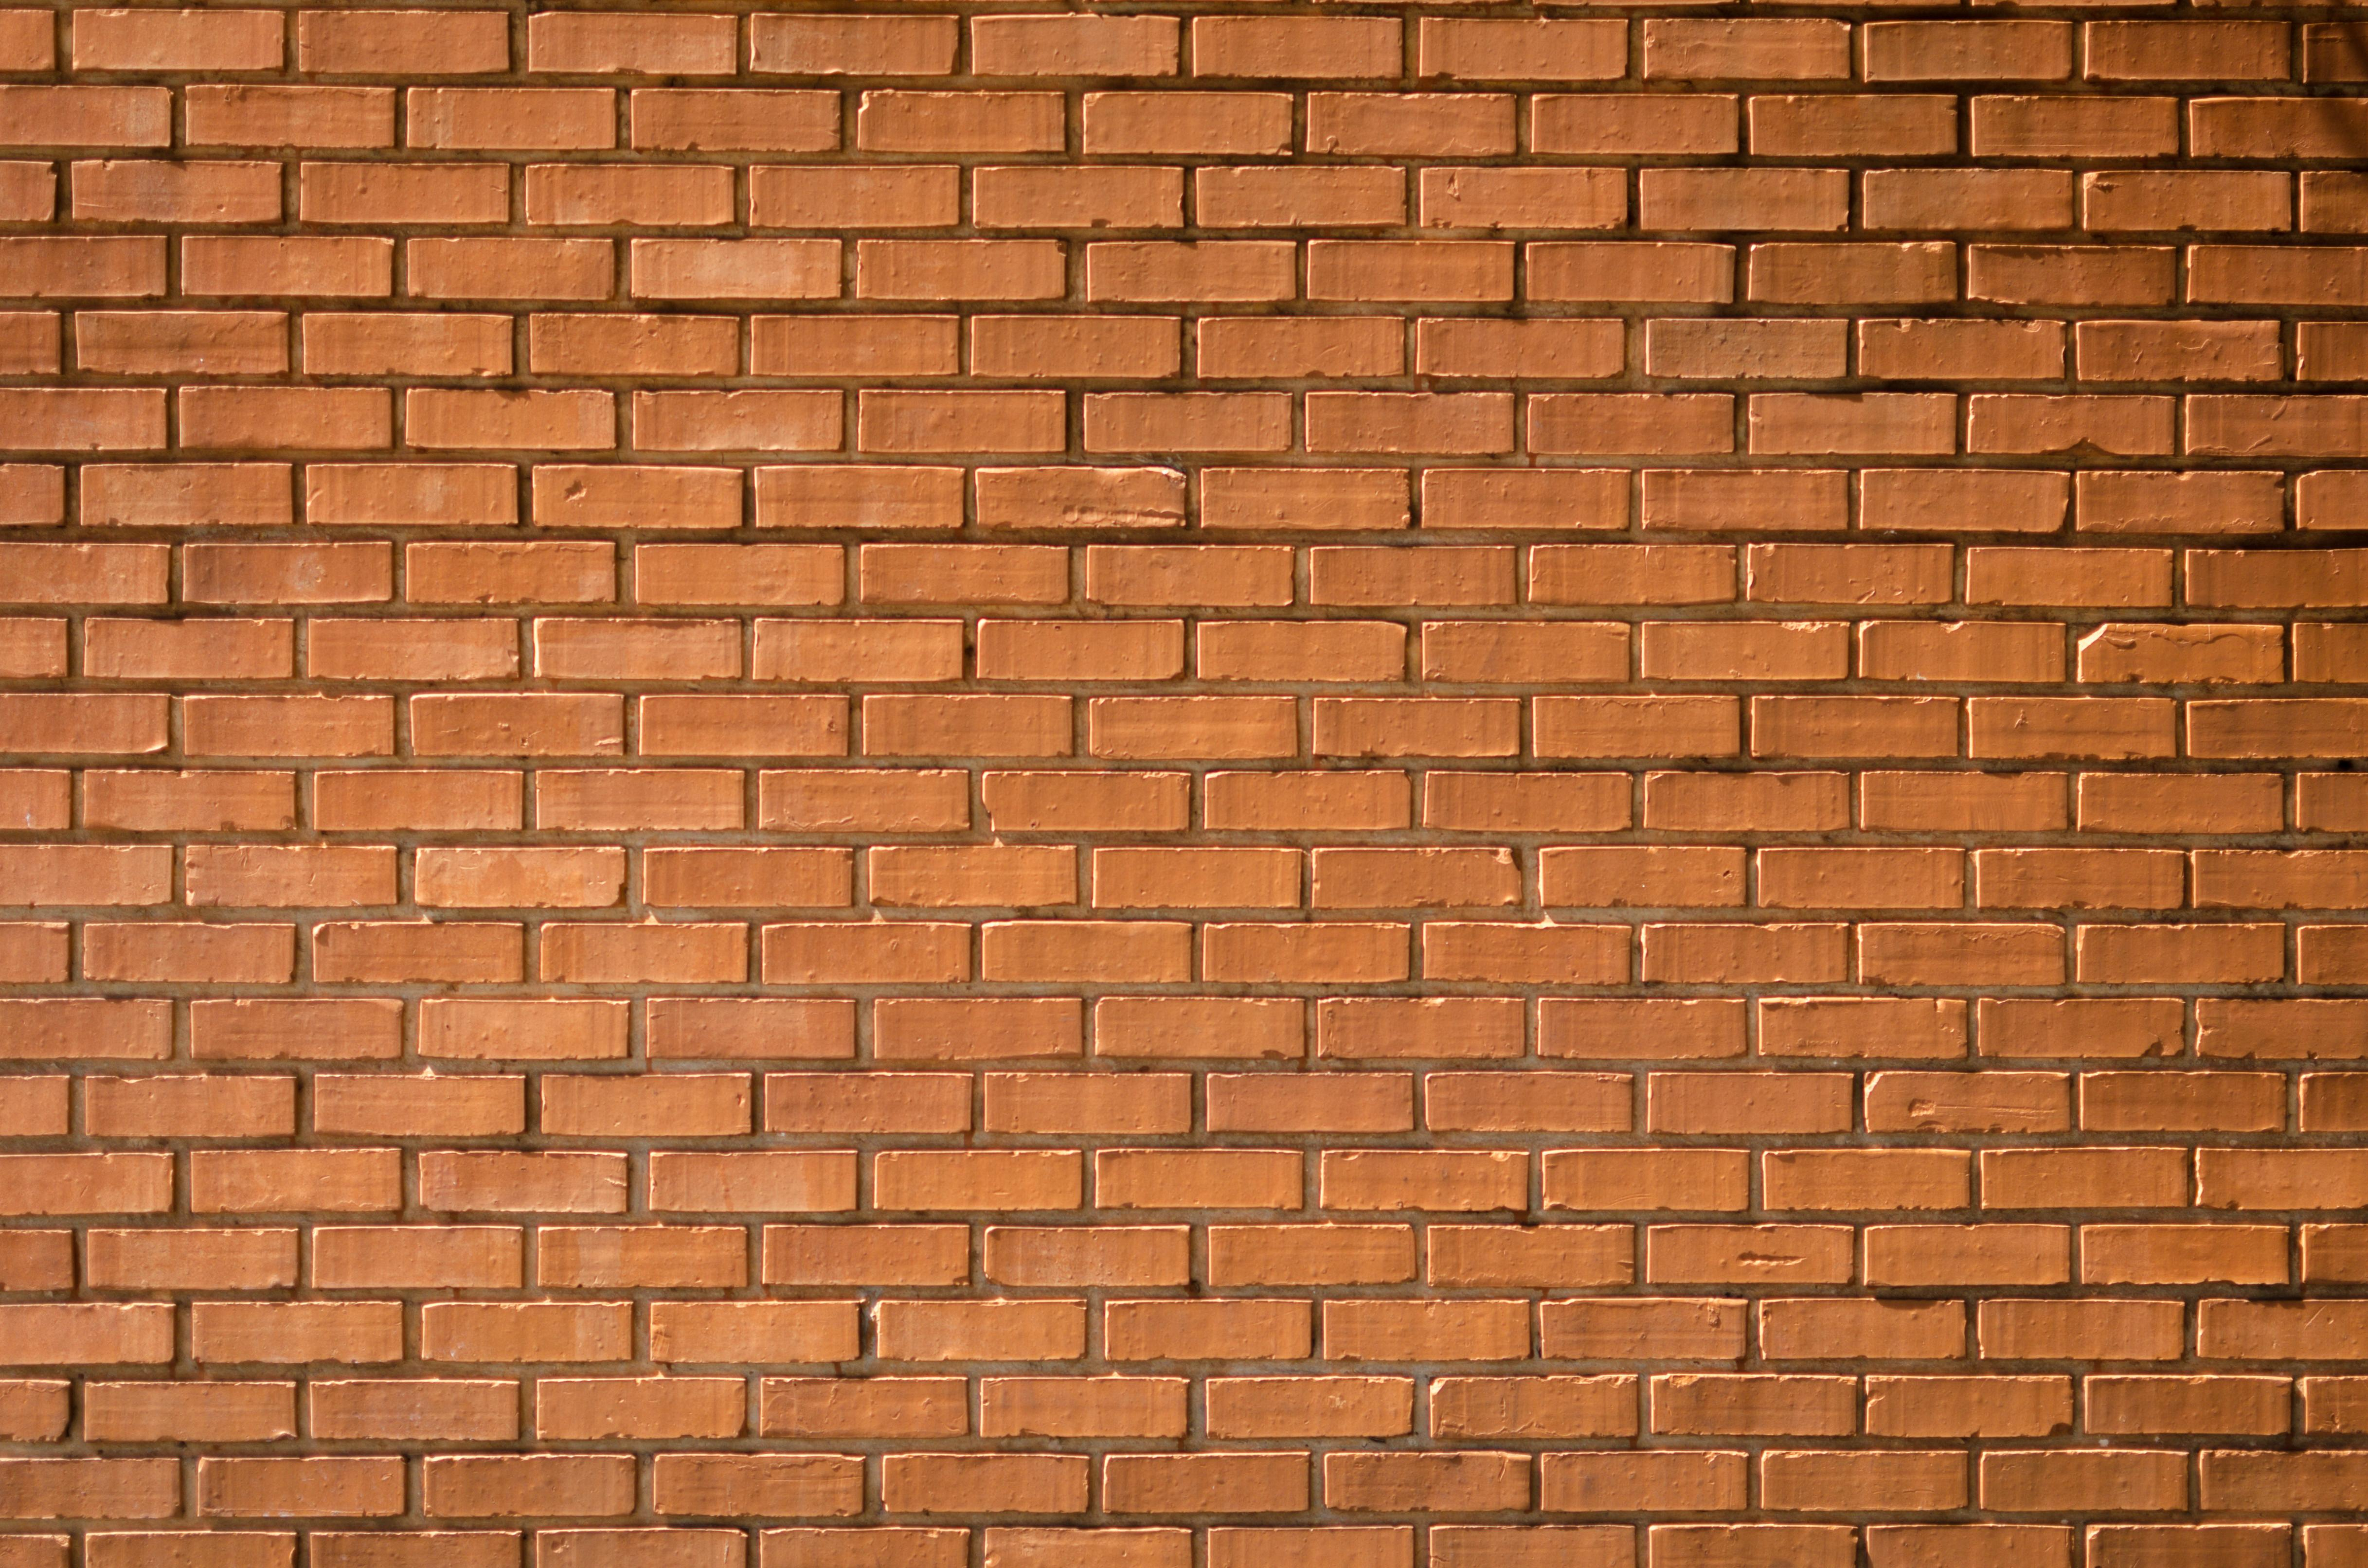 Brick Wall Png, png collections at sccpre.cat.